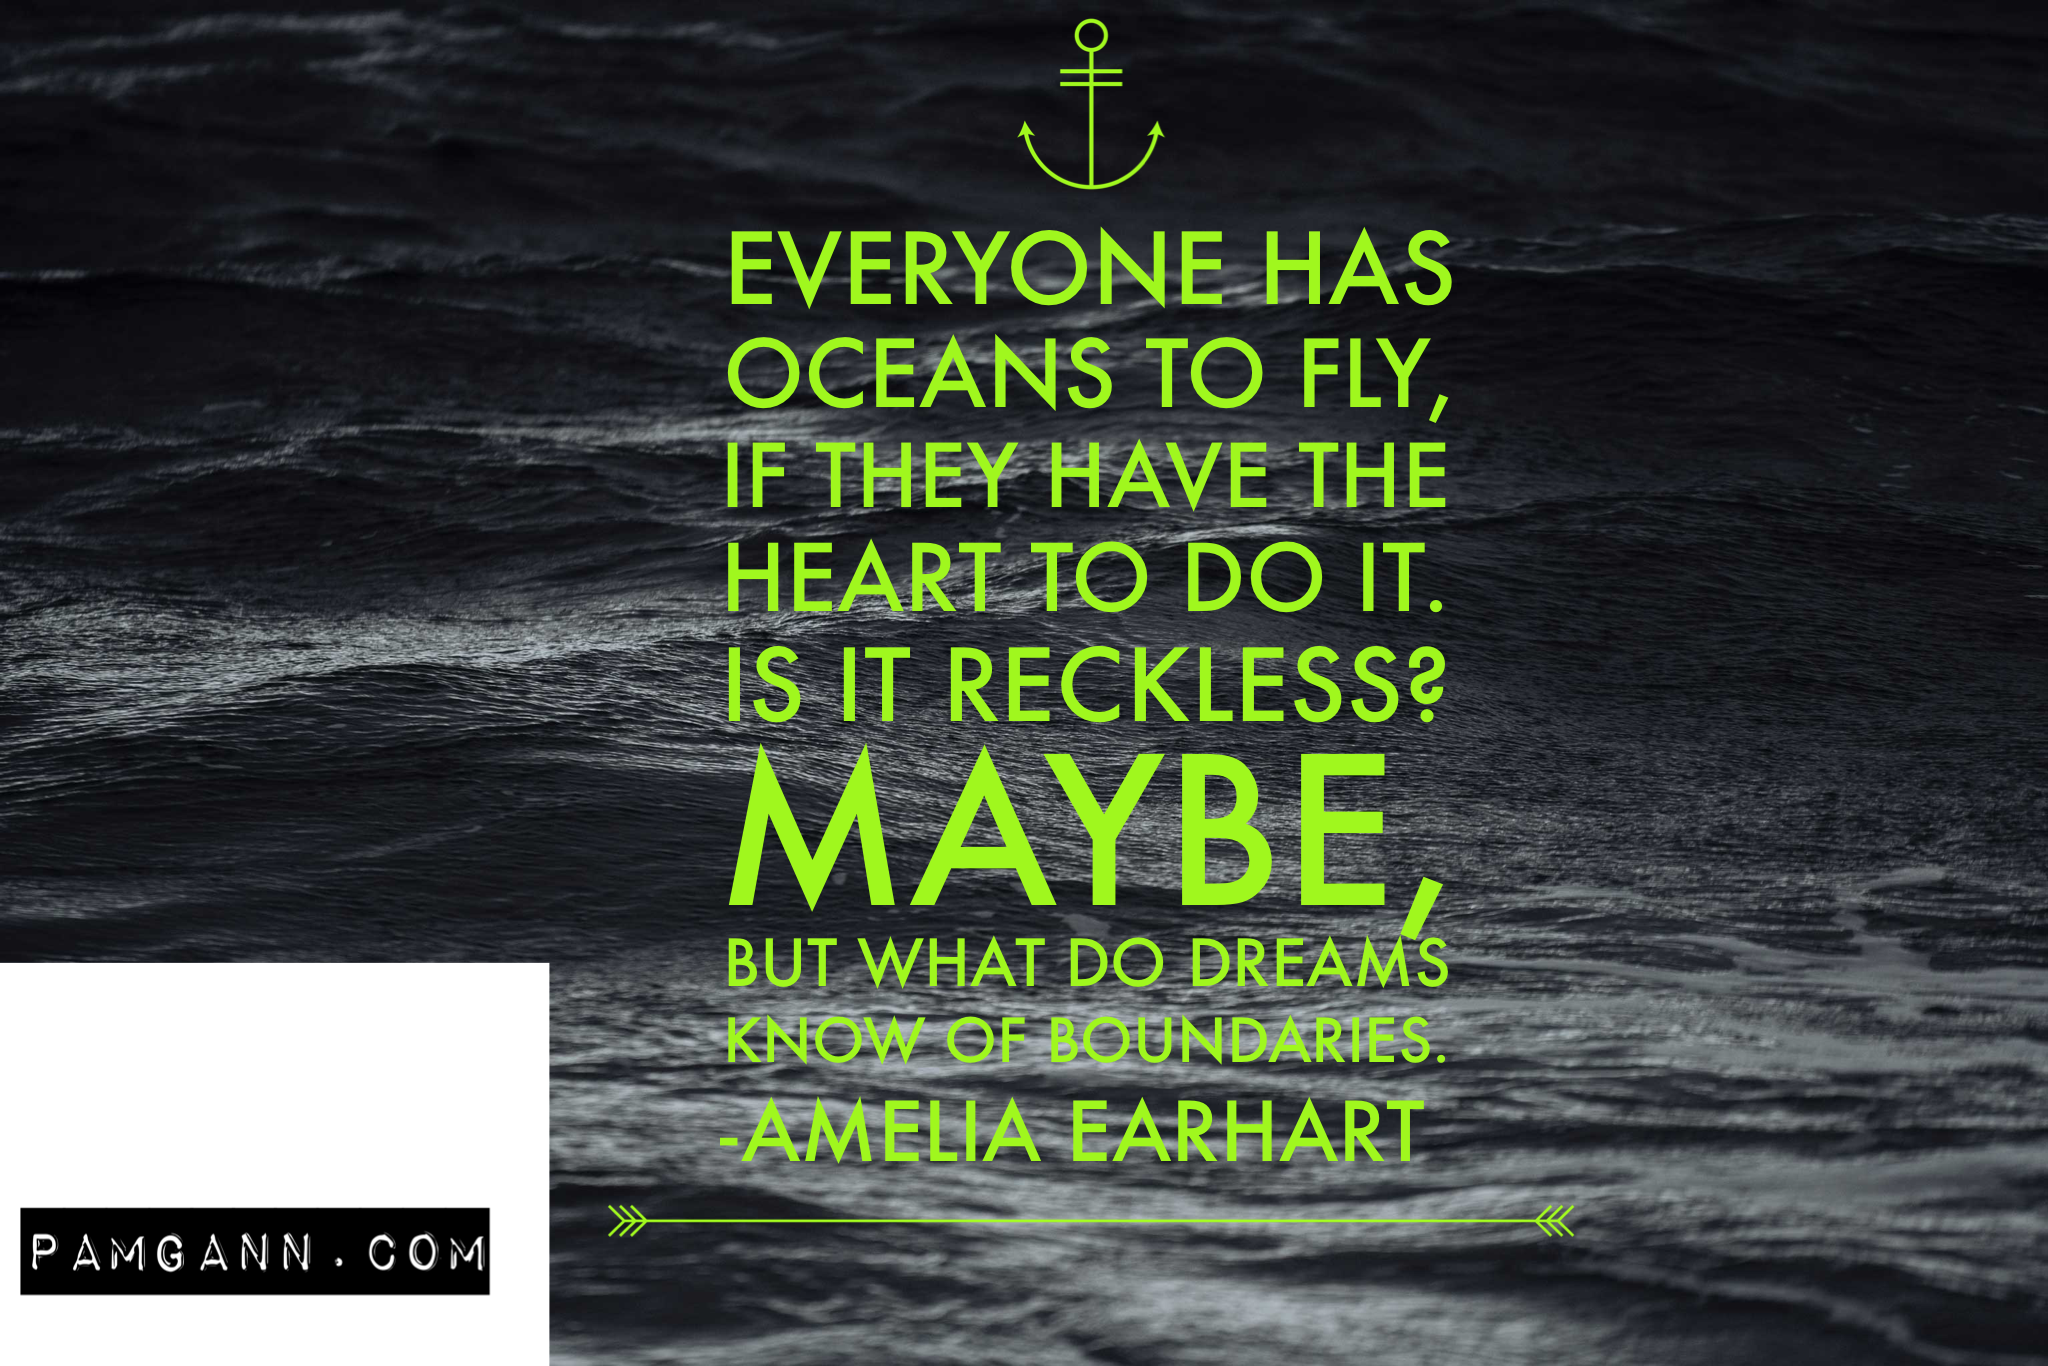 Everyone Has Oceans To Fly Amelia Earhart Travel Quote